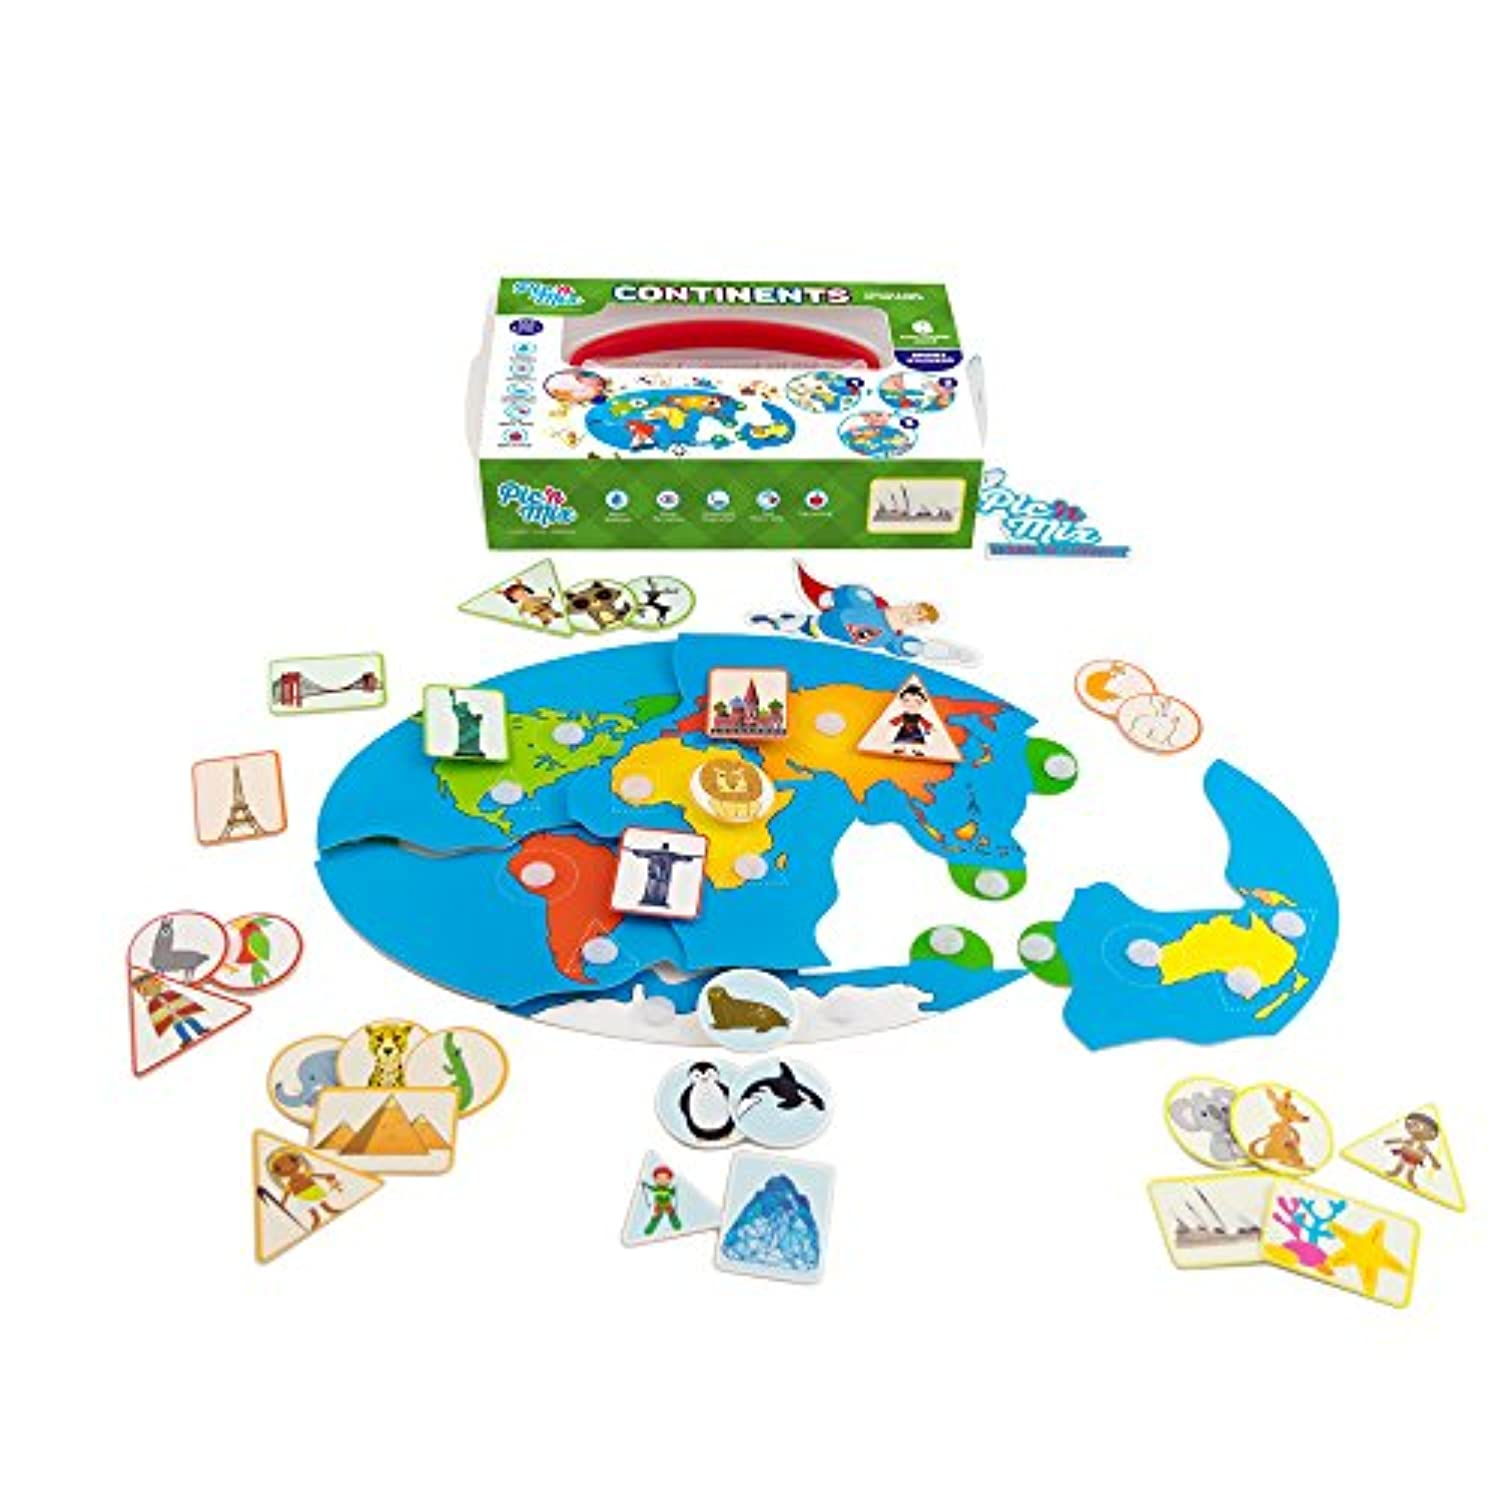 (Continents) - Picnmix Educational Learning Toy and Game Sticker Puzzle for 3 year olds to 7 year olds